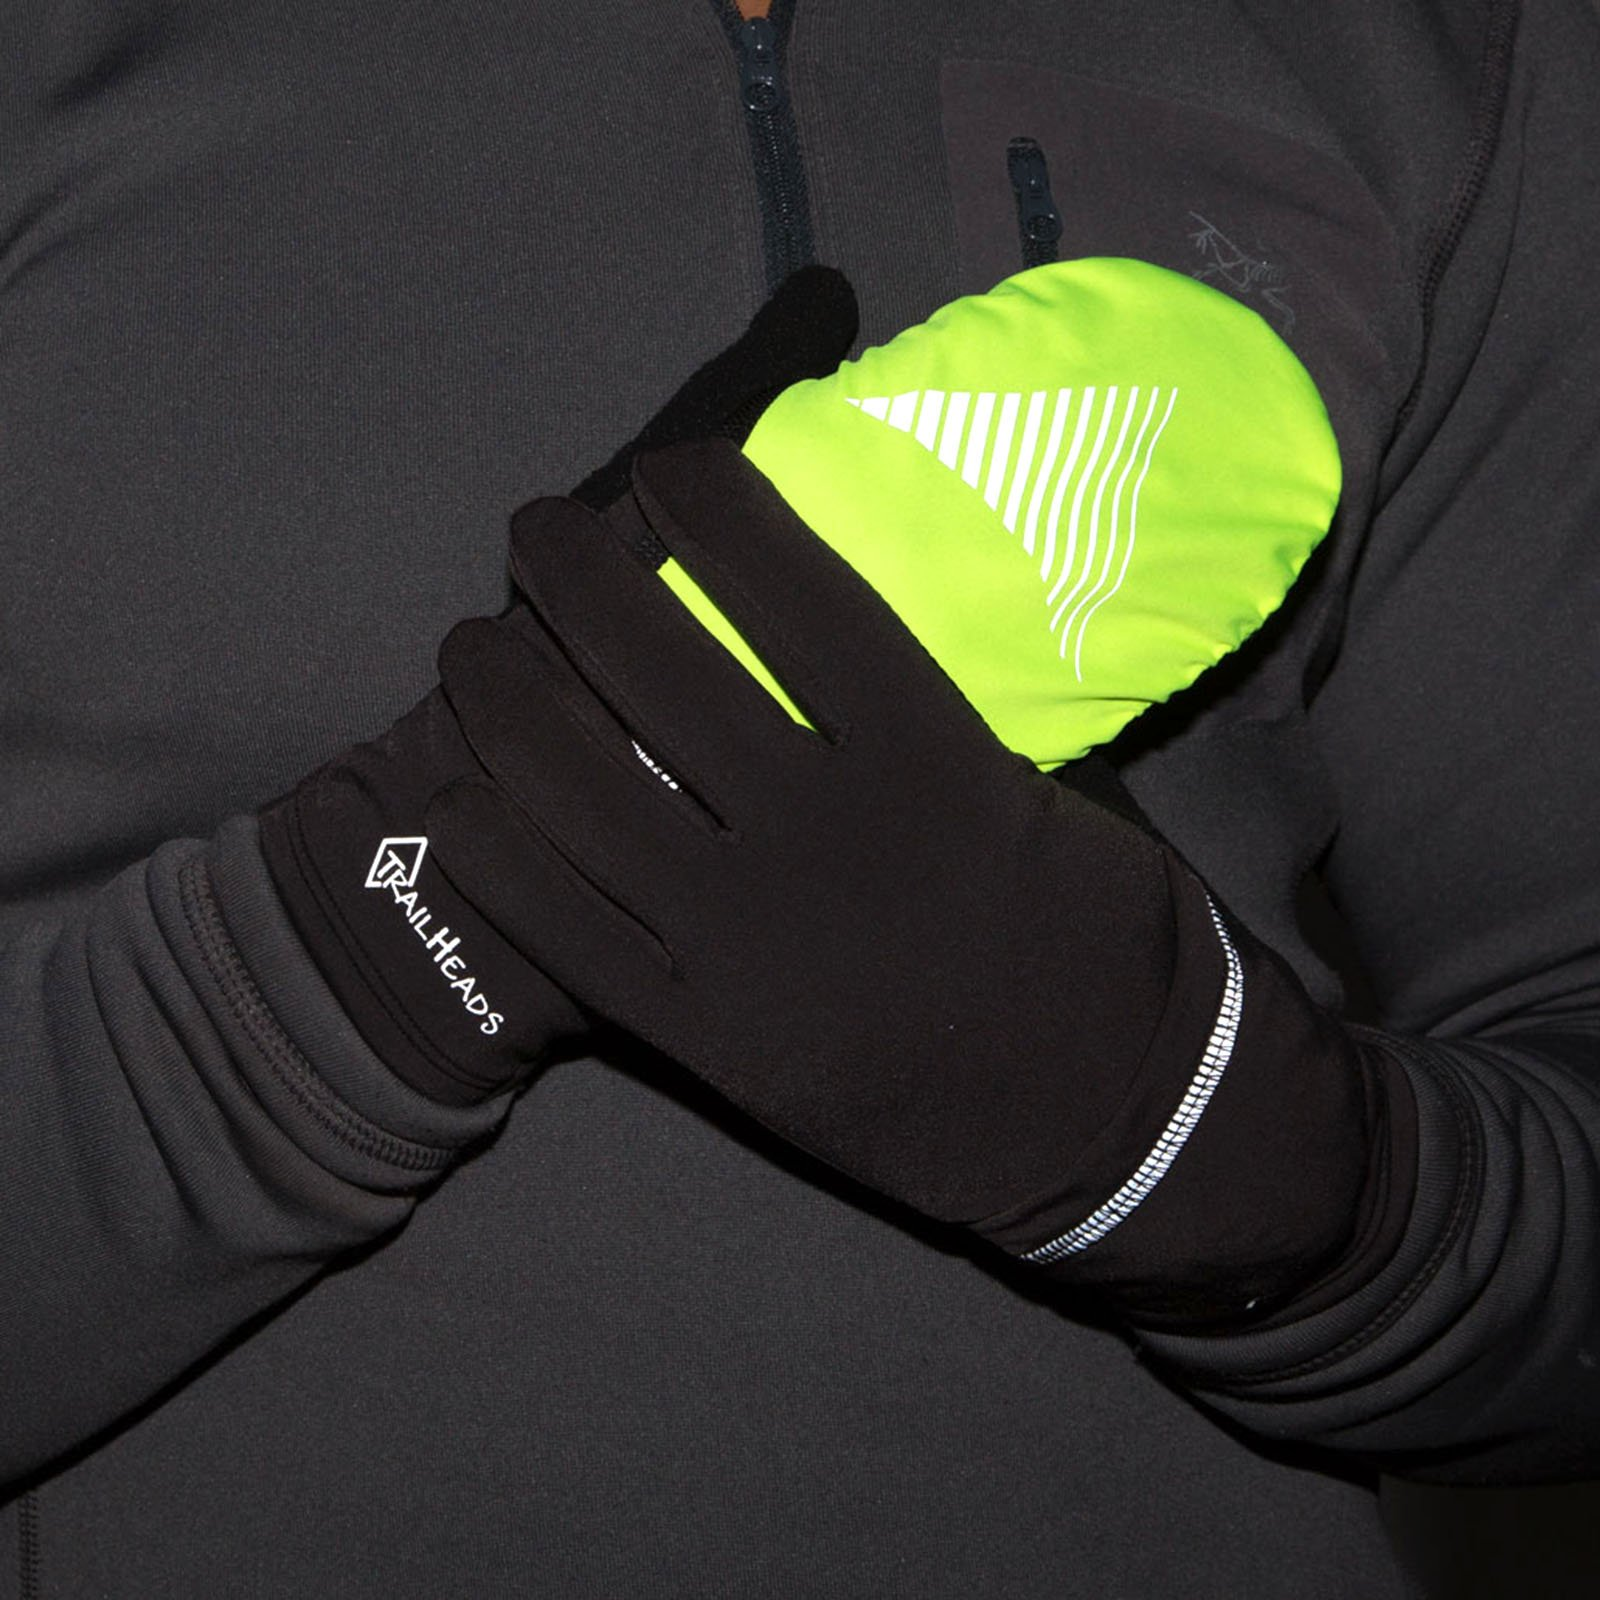 TrailHeads Convertible Running Gloves - black/hi-vis (small/medium) by TrailHeads (Image #4)